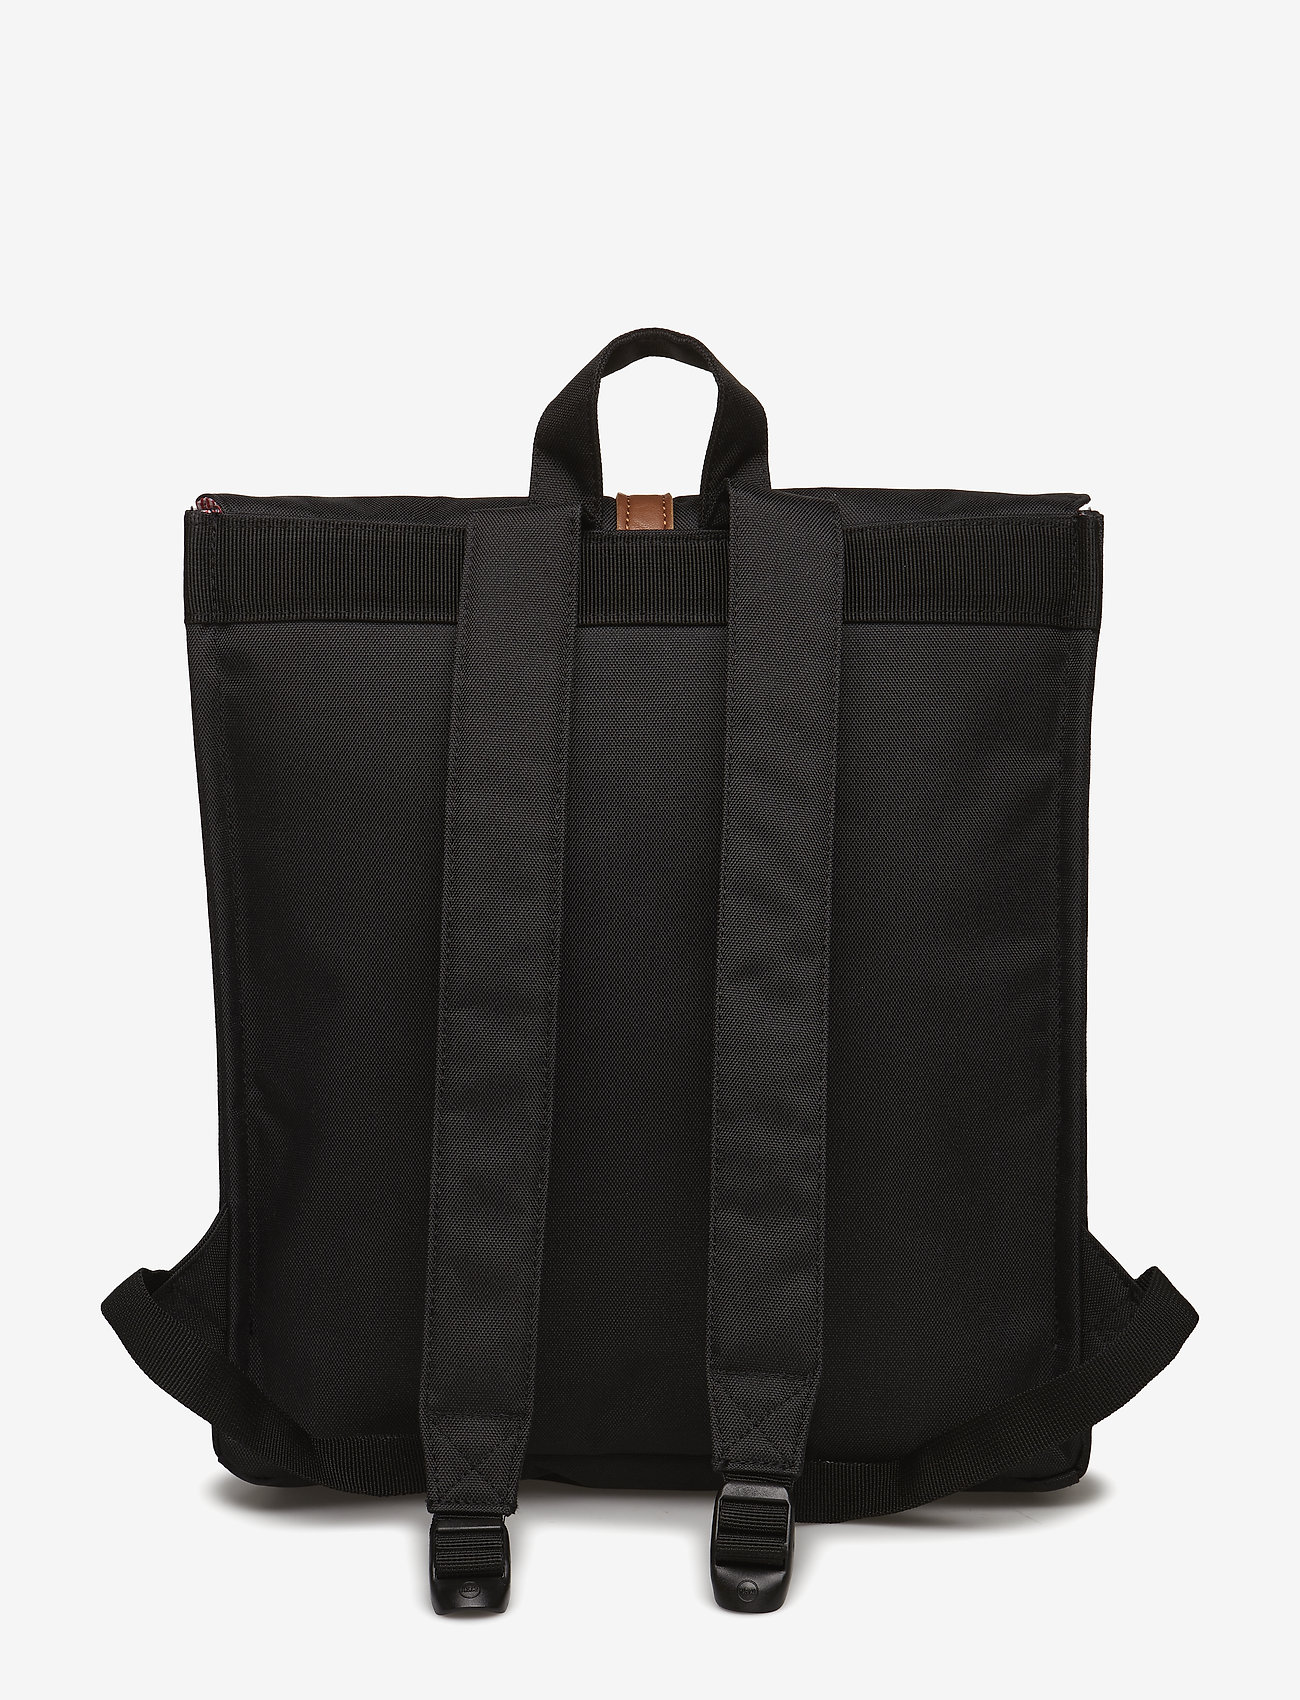 Herschel City Mid-volume - Black/tan Synthetic Leather Backpacks